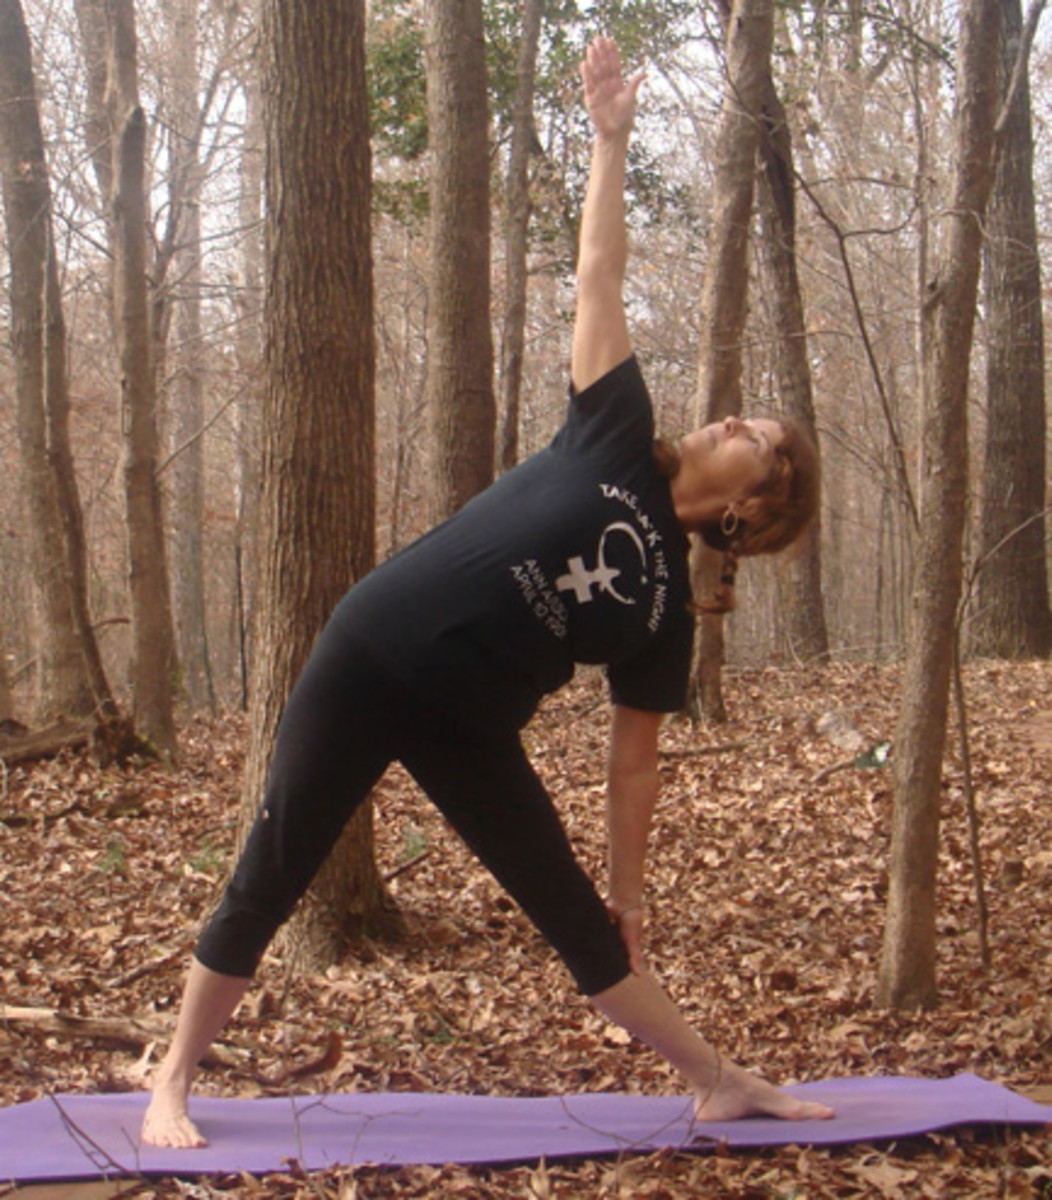 Yoga student in trikonasana, triangle pose